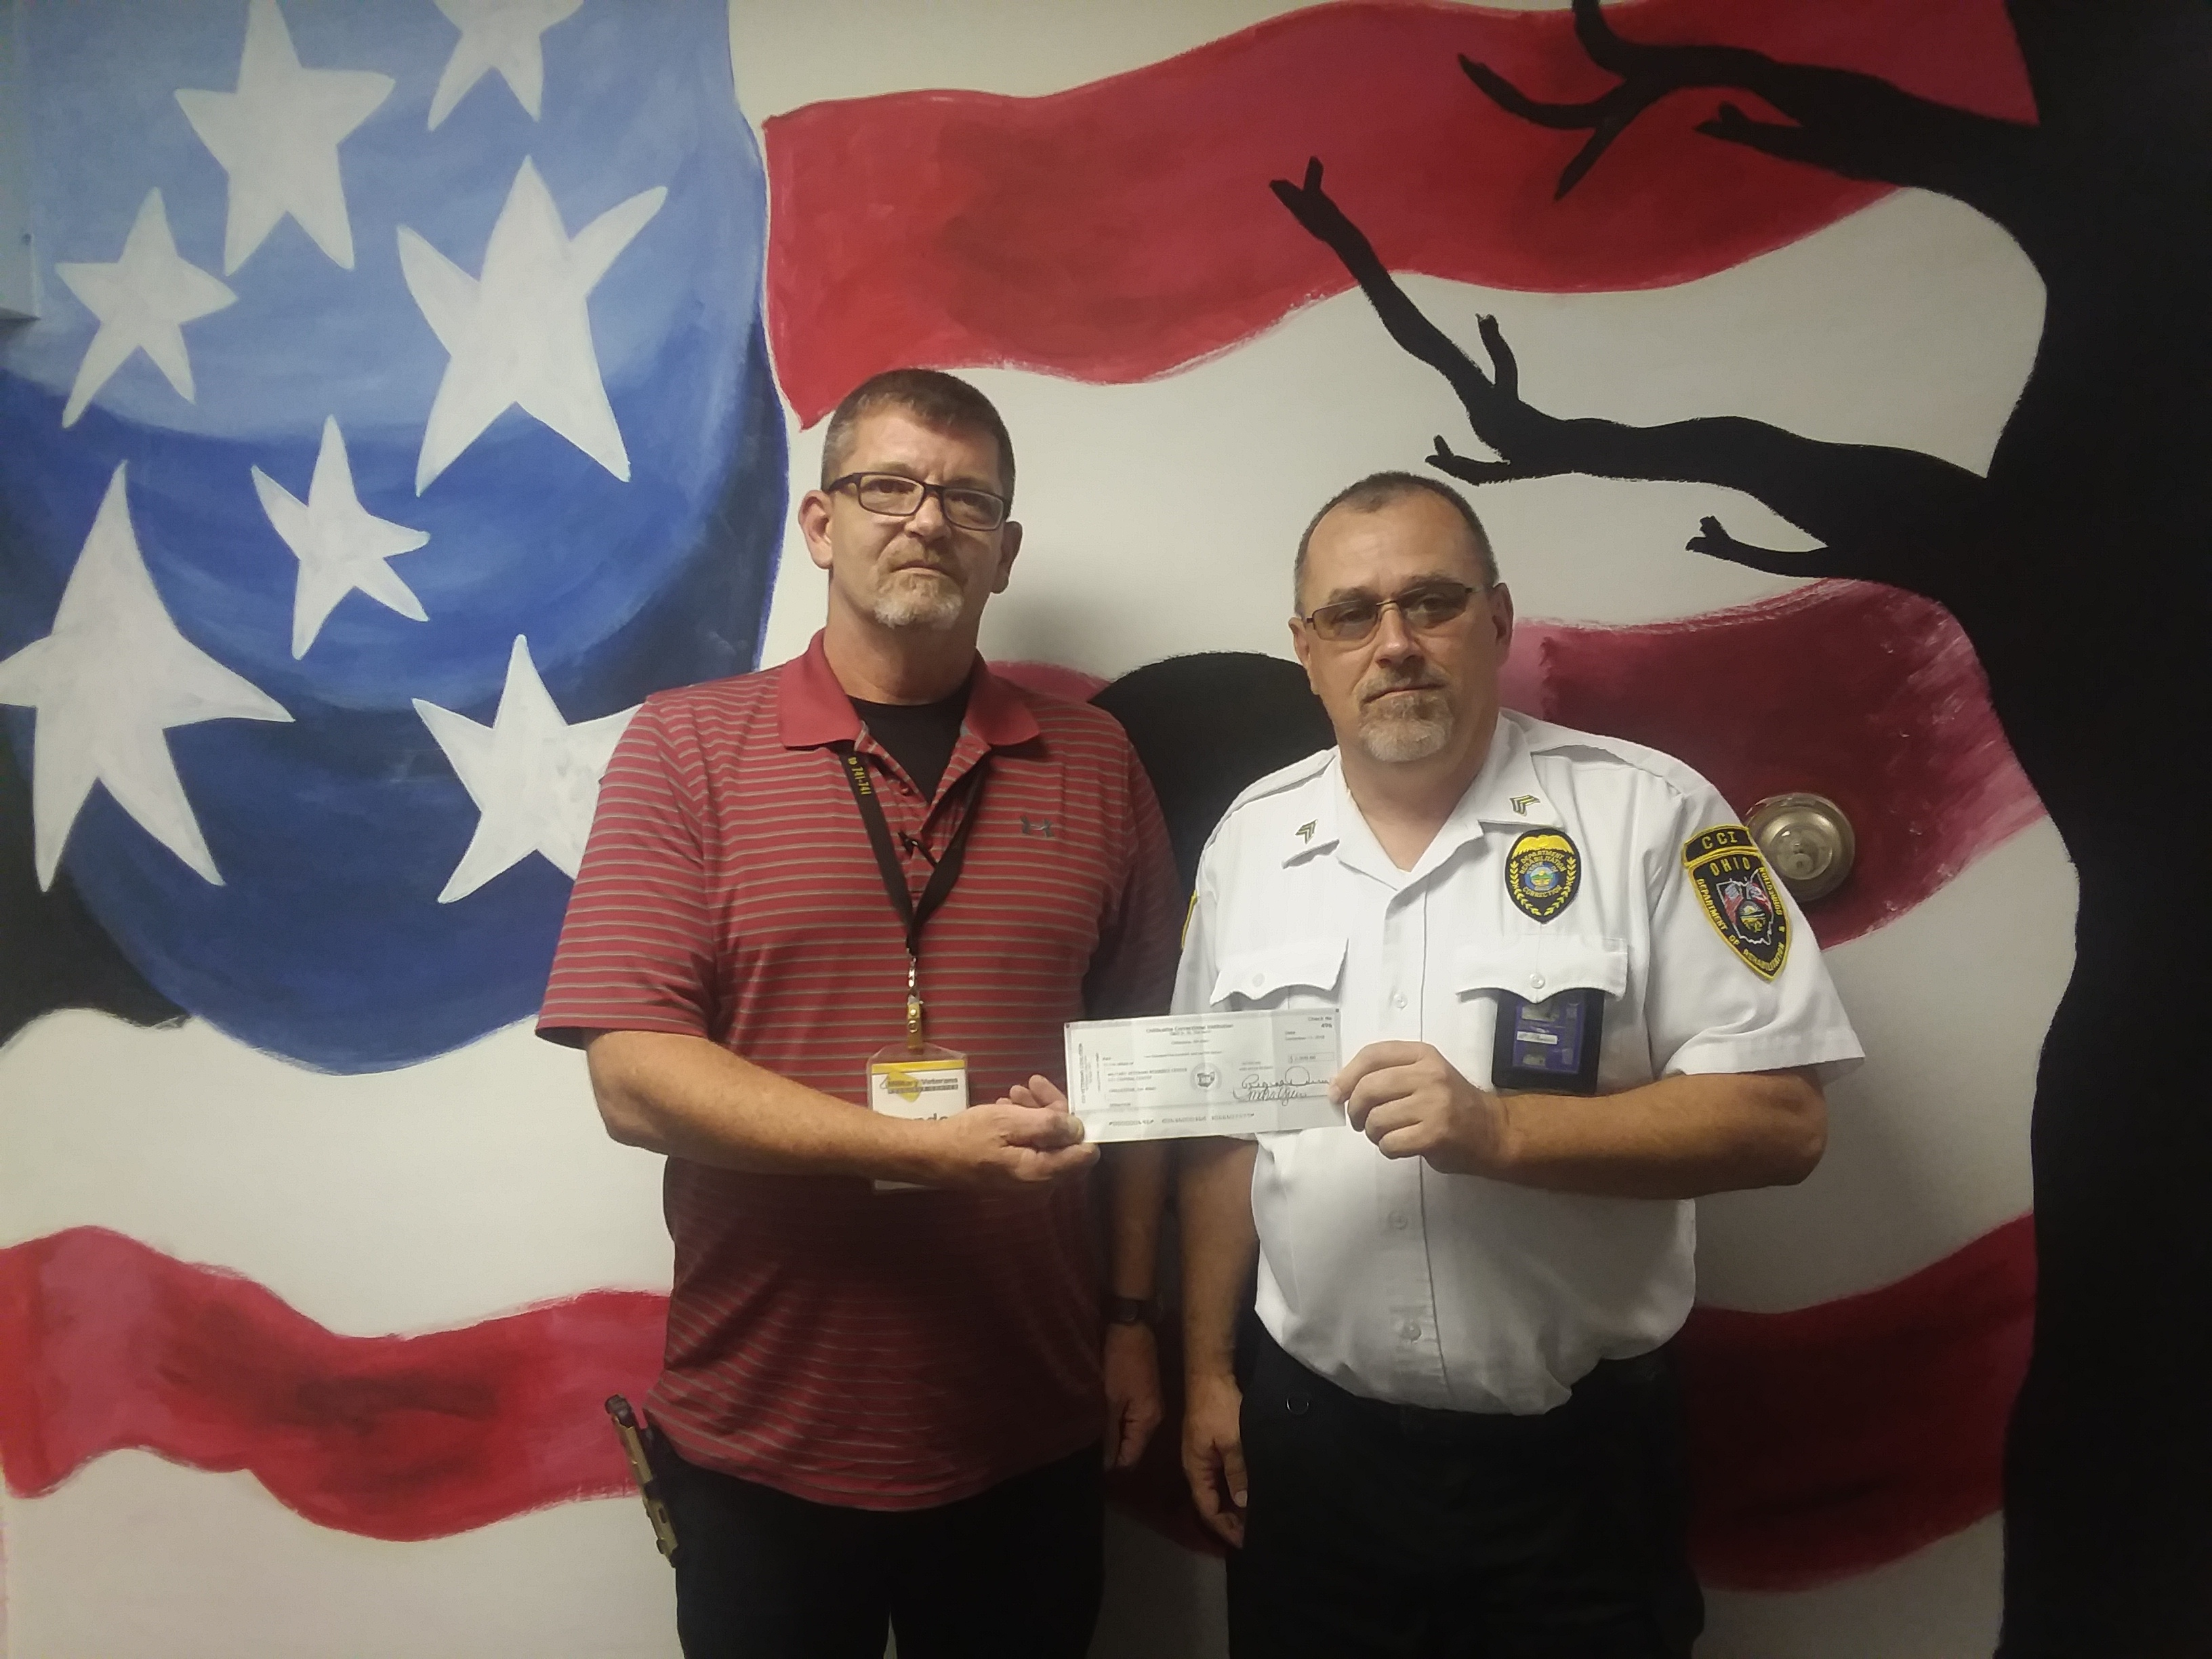 CCI's Veteran's Coalition Group Makes Donates